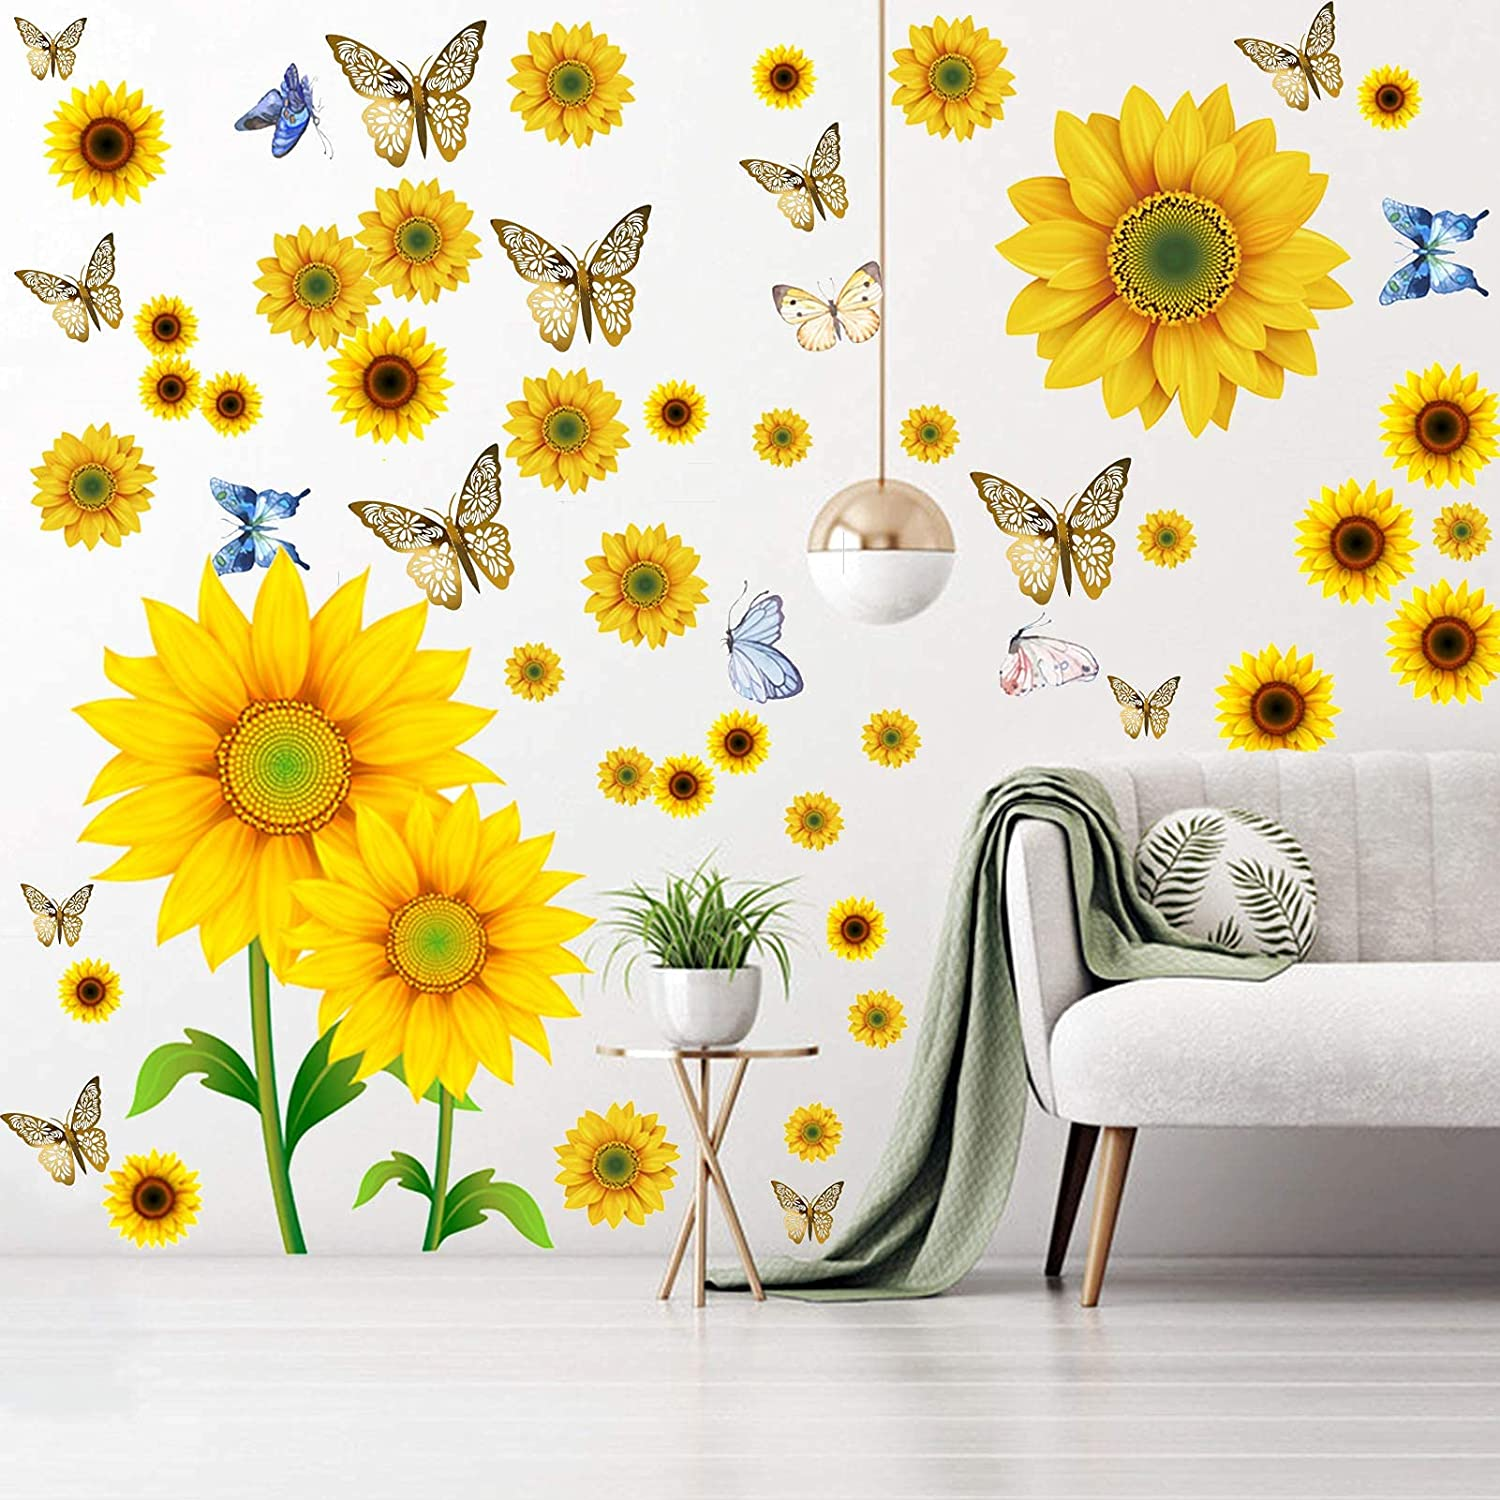 100Pcs Sunflower Wall Stickers with 3D Metallic Hollow-Out Butterfly, EsLuker.ly Removable Vinyl DIY Yellow Flower Mural Decor Daisy Floral Decals for Living Room Bedroom Nursery Decoration